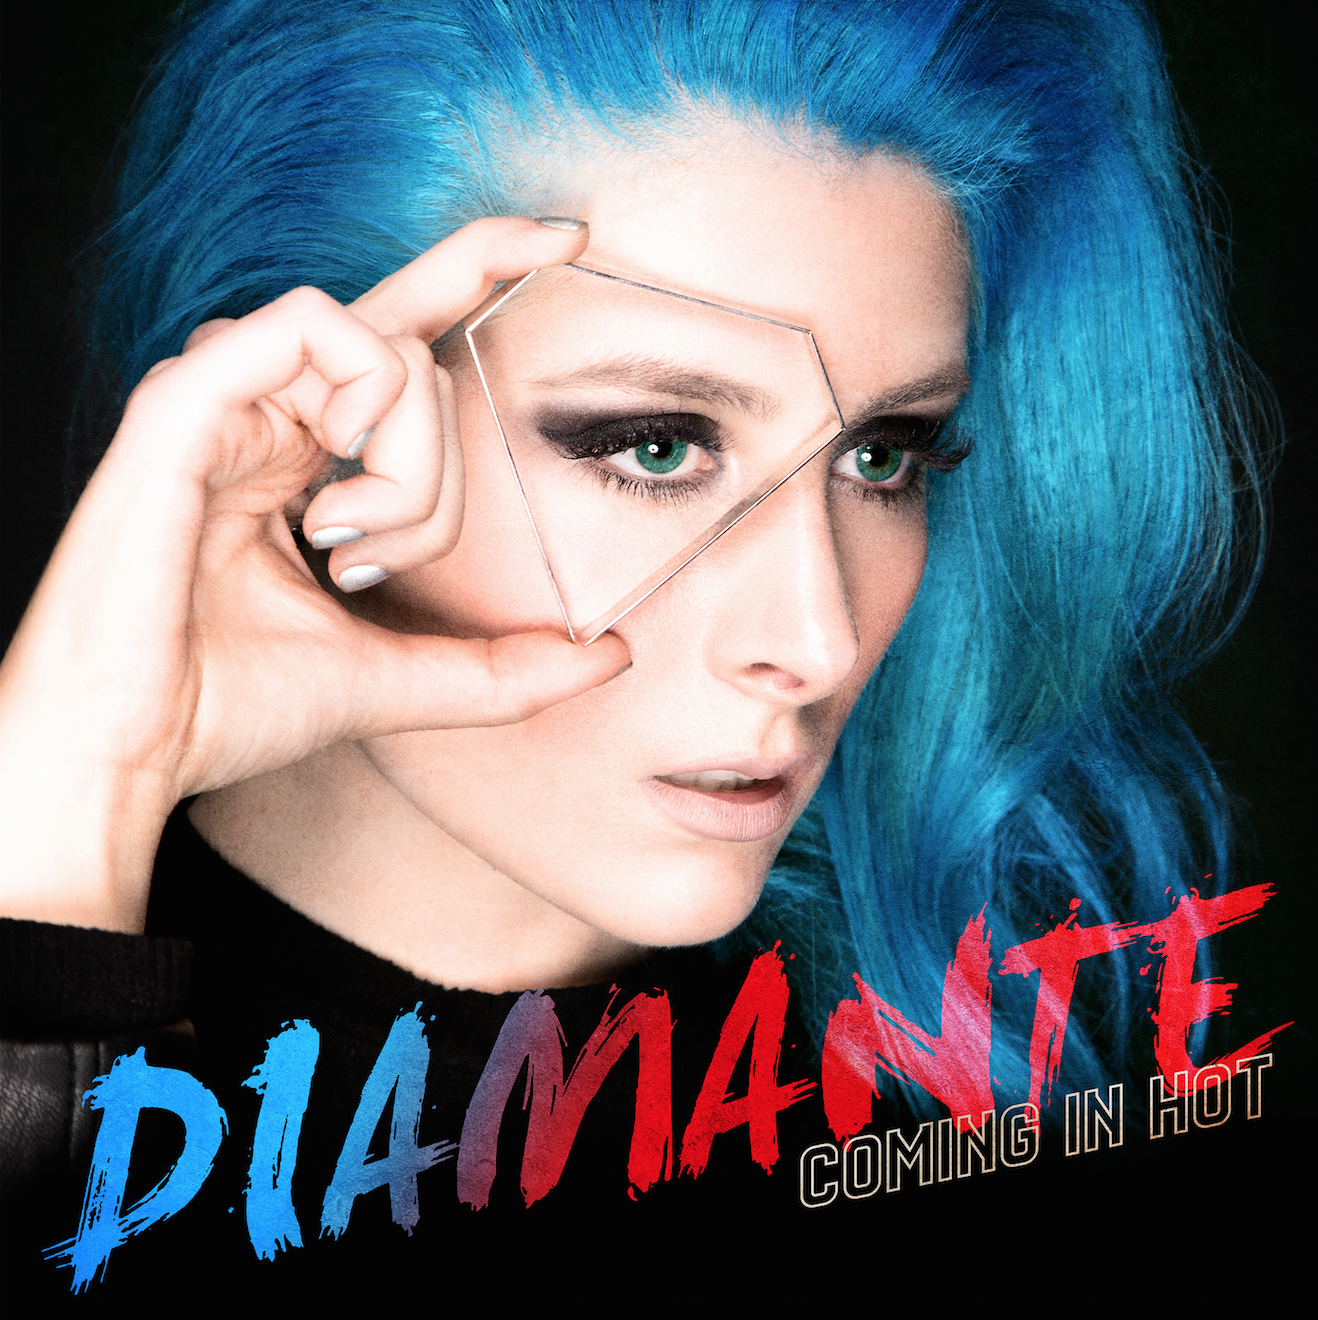 JP's Music Blog: New Music From Indie-Artists Diamante, Bad Cop